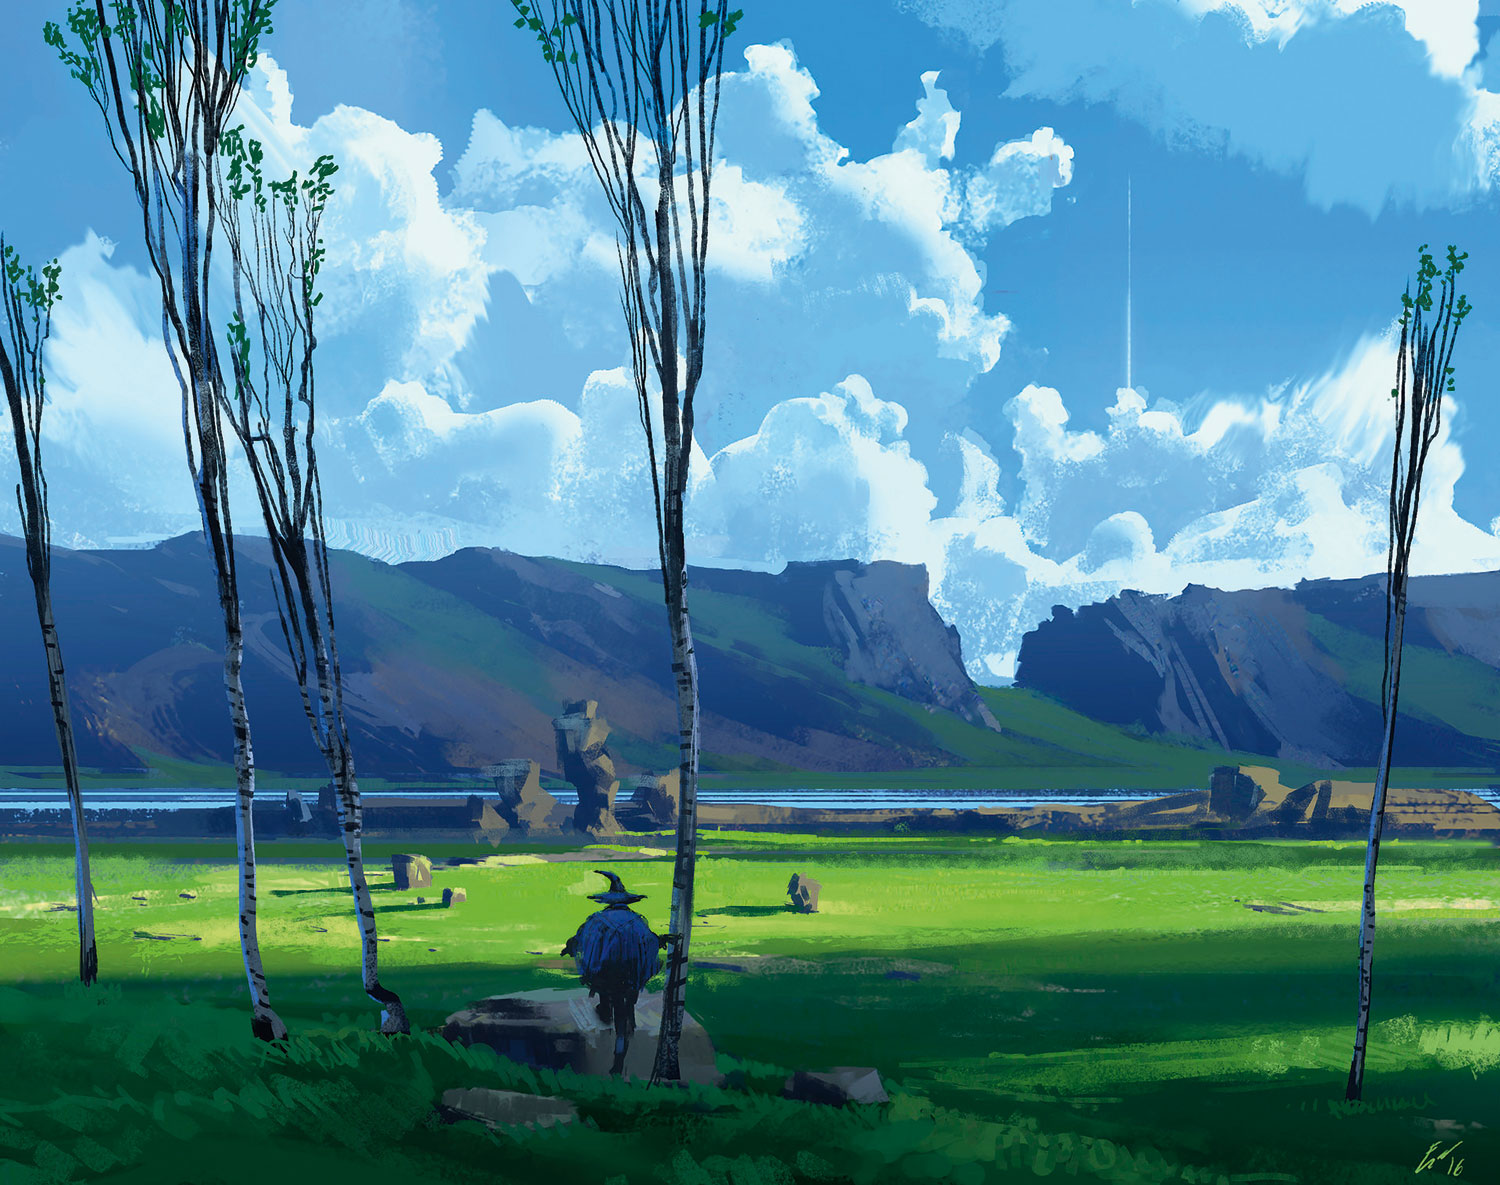 landscape scene with a wizard in it